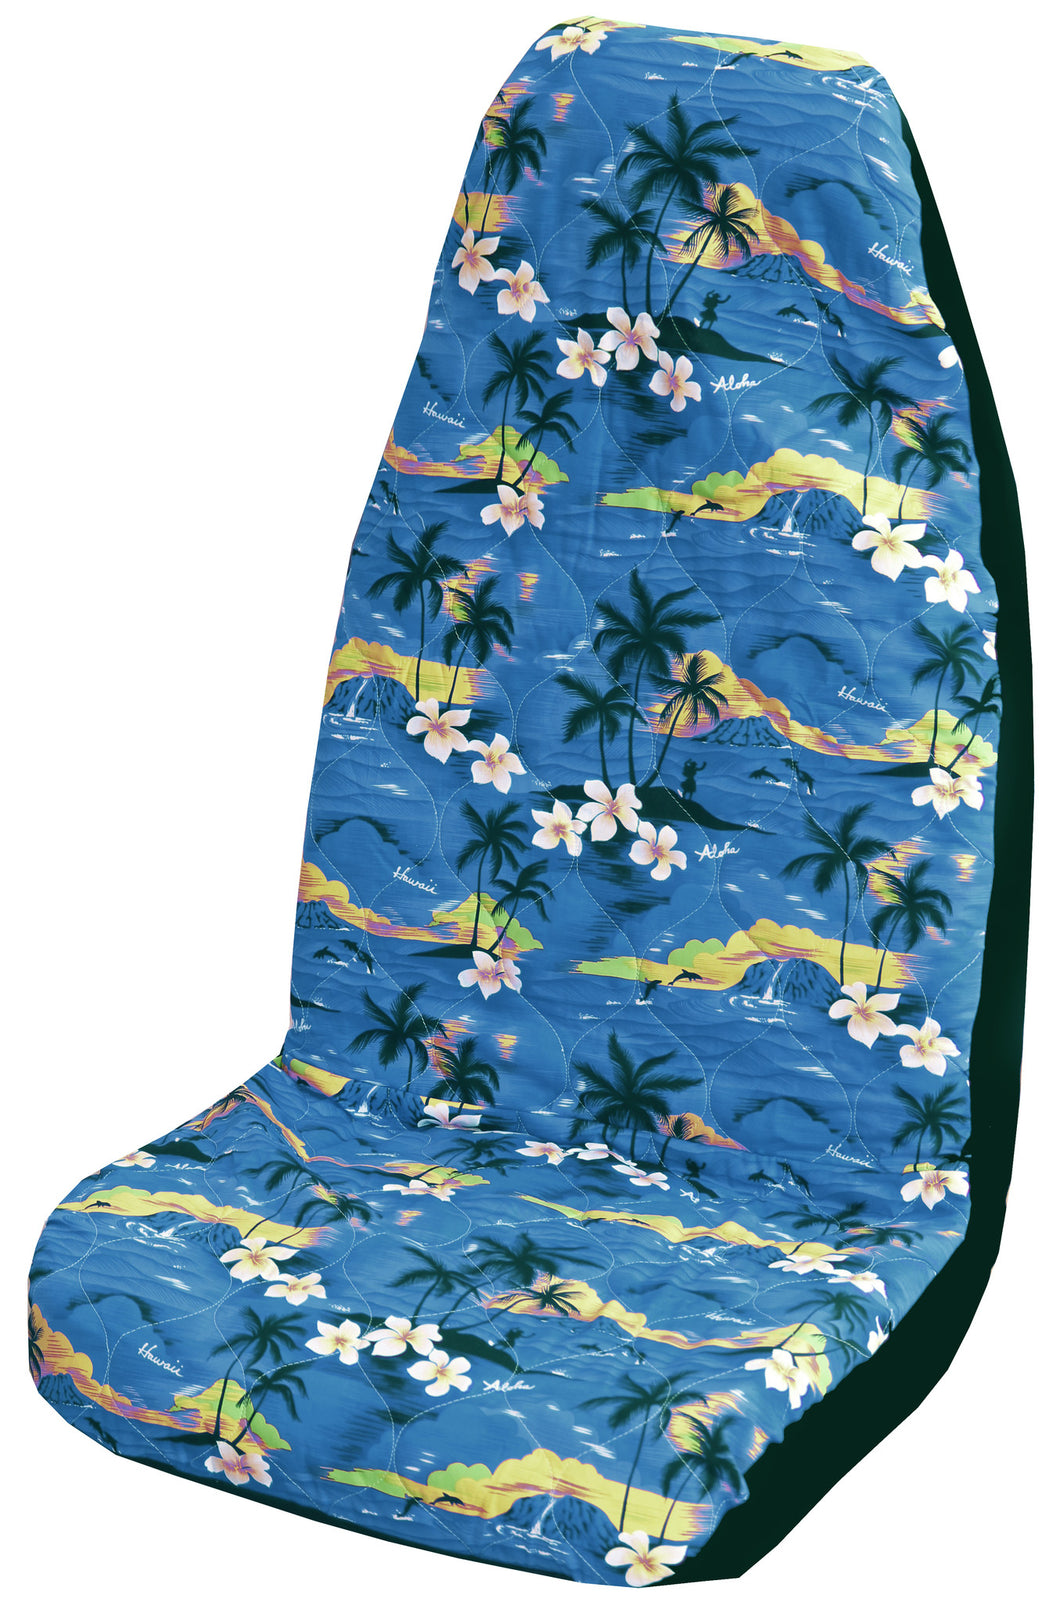 Blue 100 Sunsets Hawaiian Car Seat Cover - Set of 2